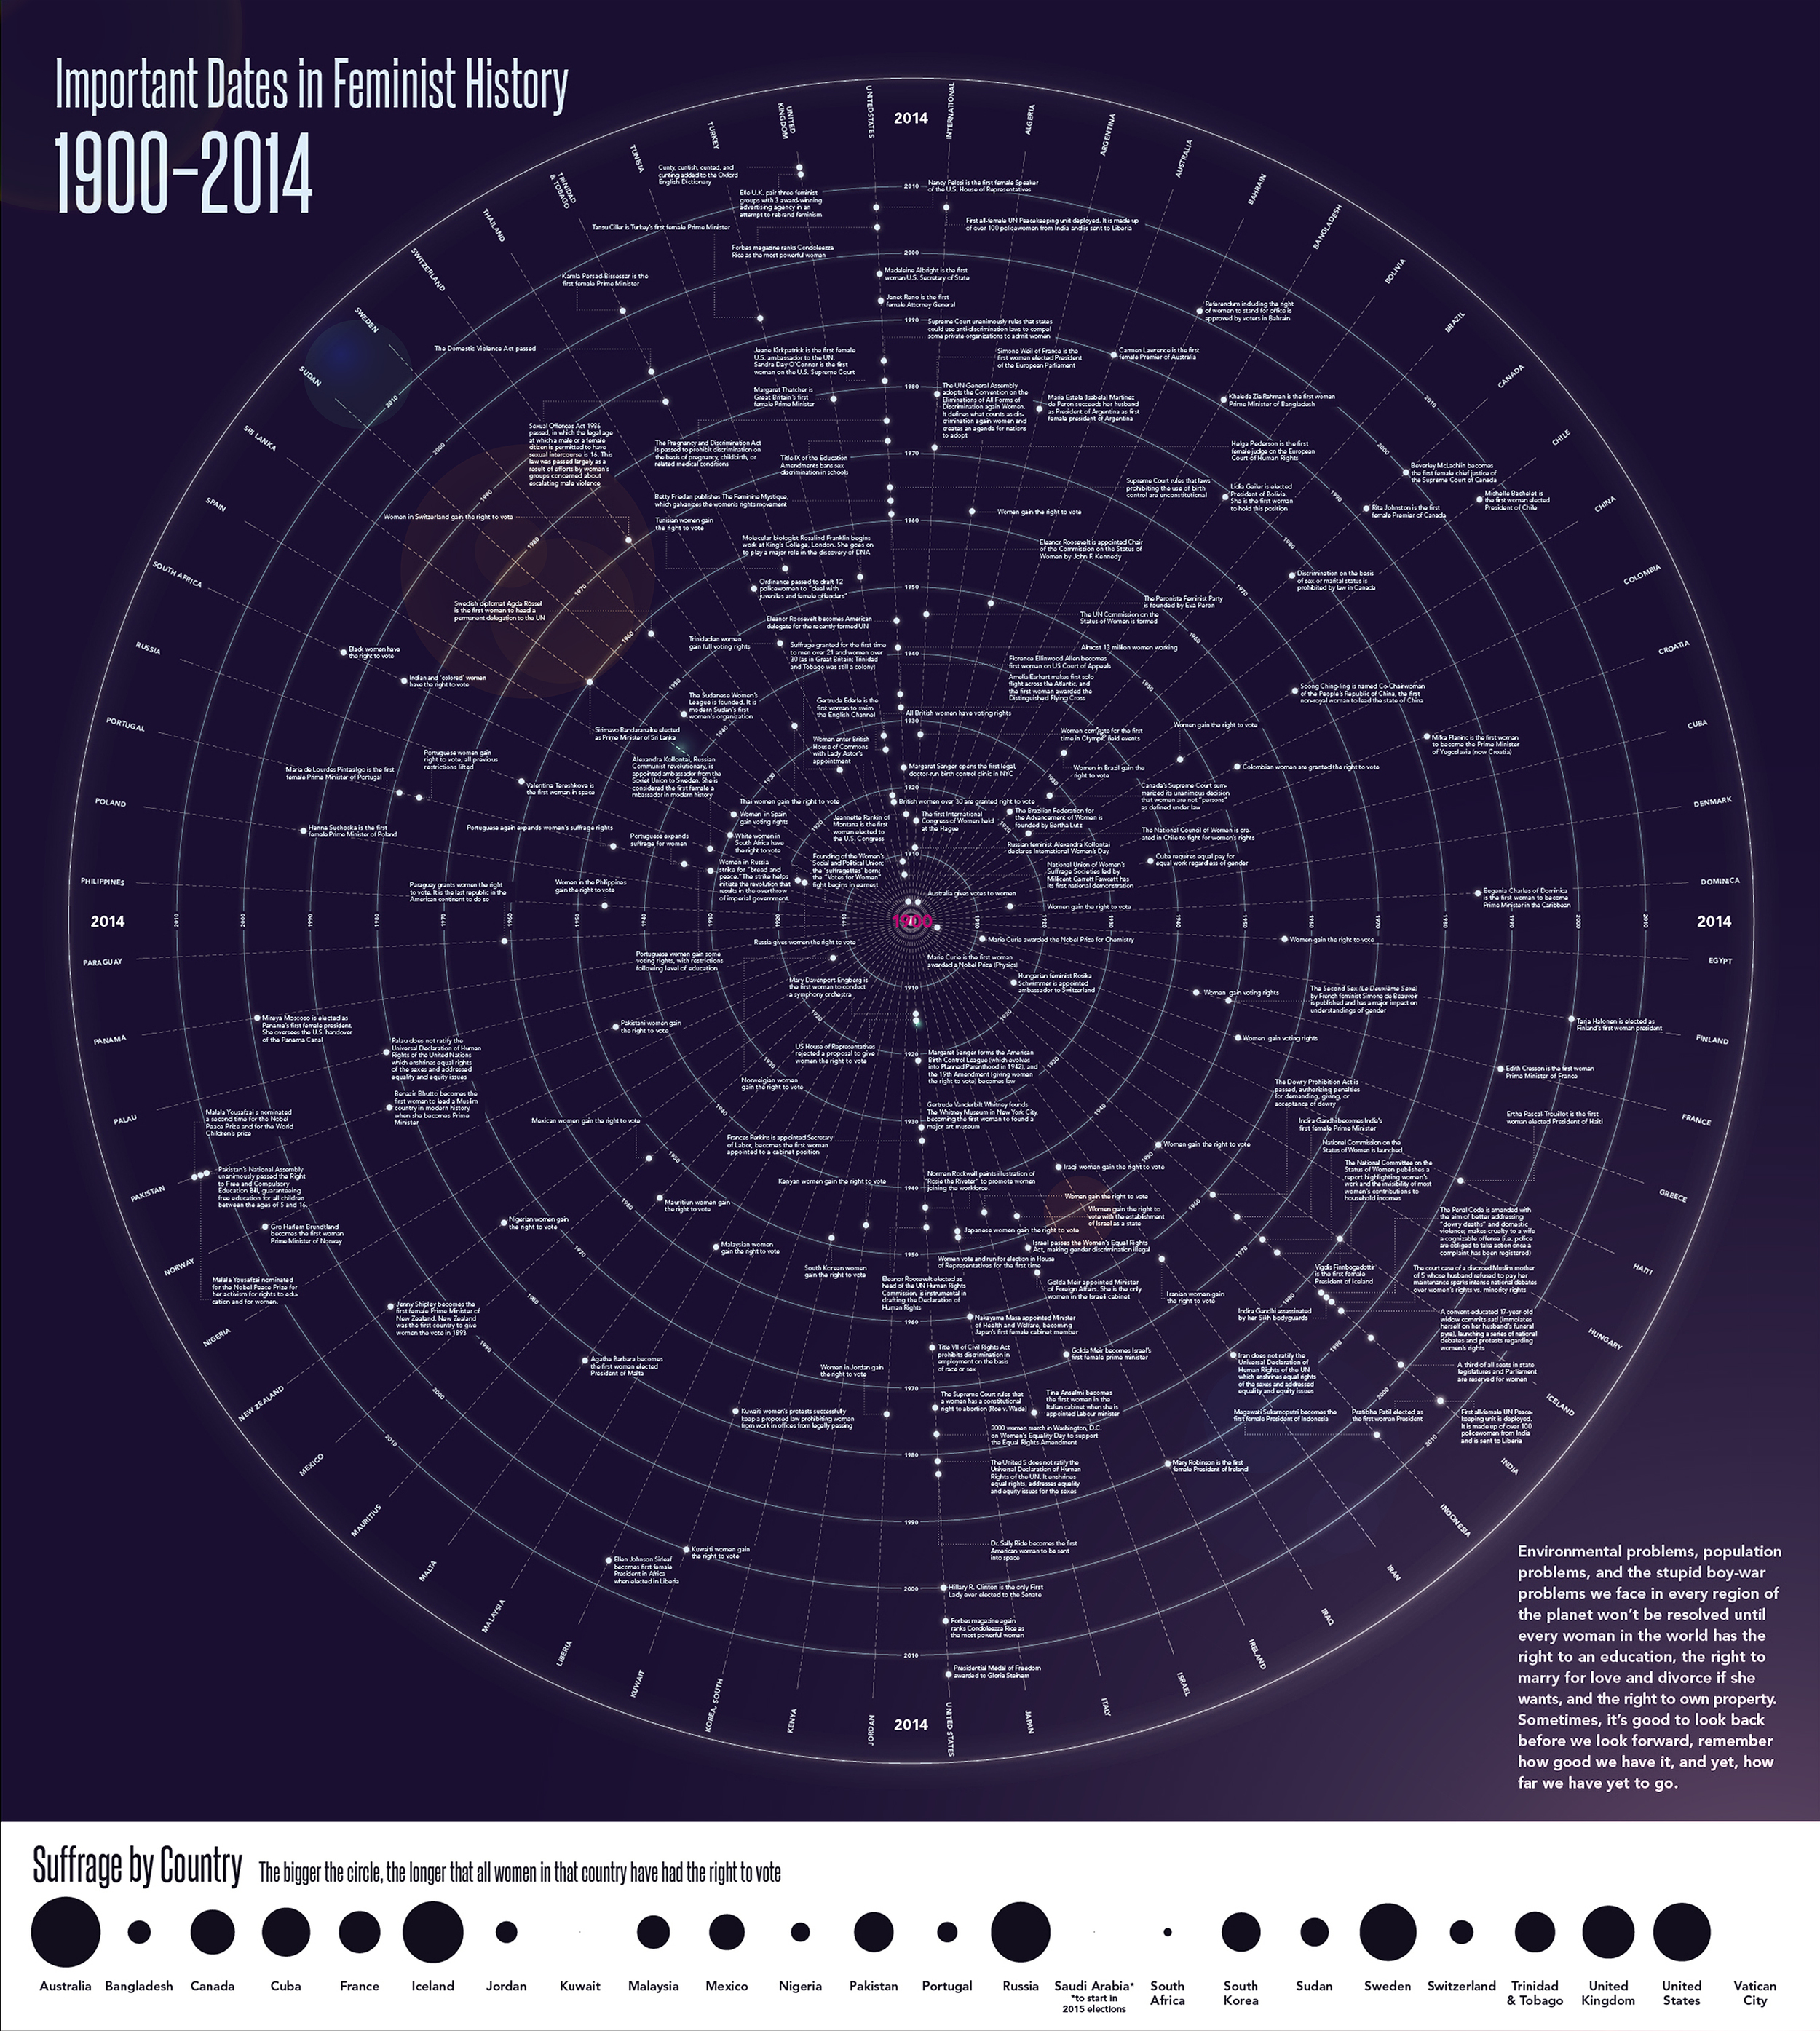 The Full Timeline, showing 67 countries and secondary Suffrage Infographic at bottom.